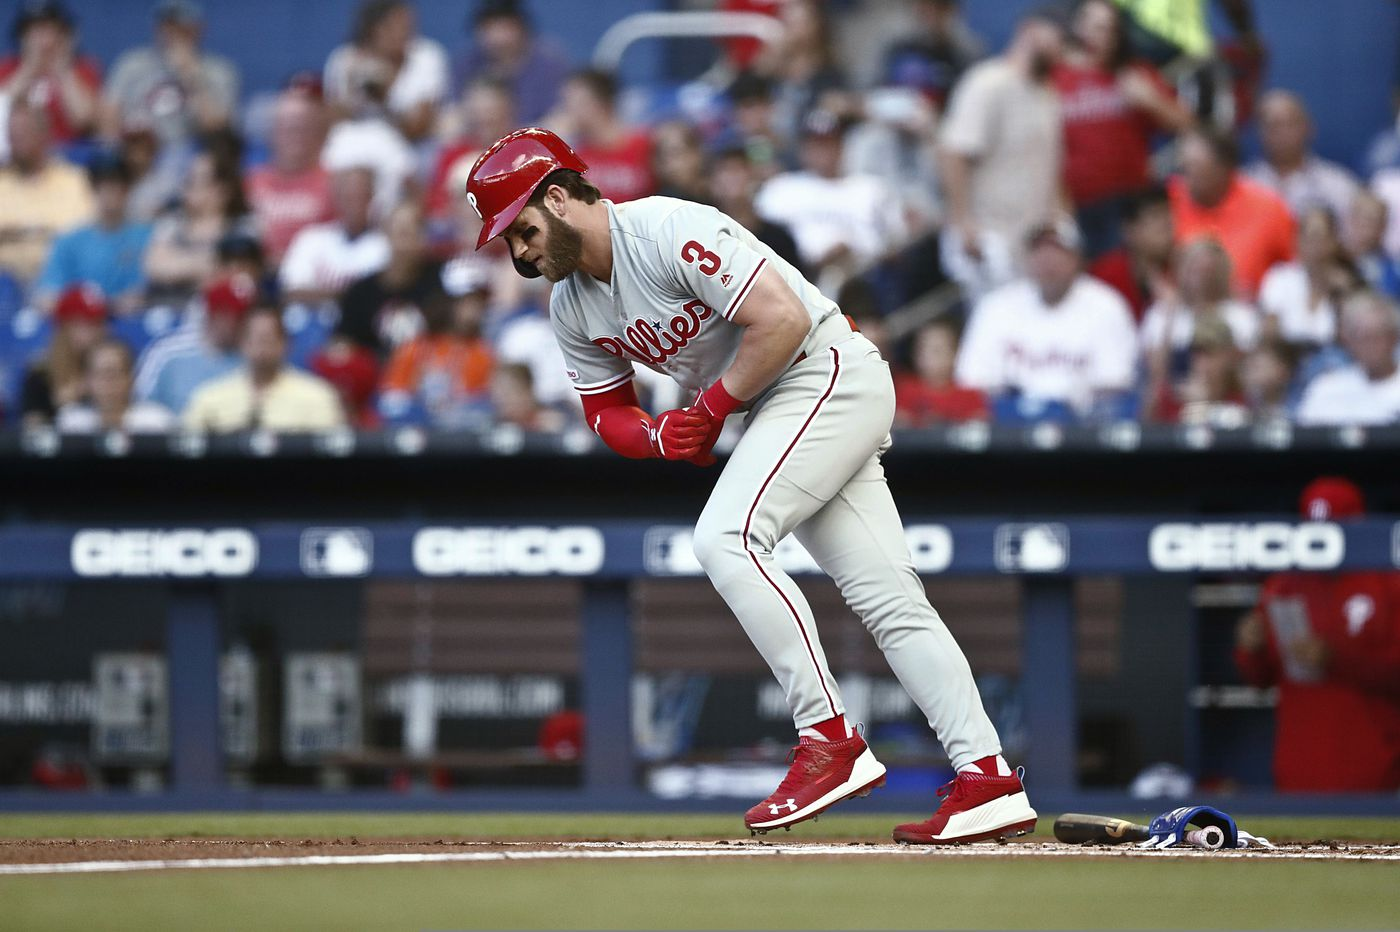 Phillies get thumped by last-place Marlins as Zach Eflin gives up three home runs in one inning